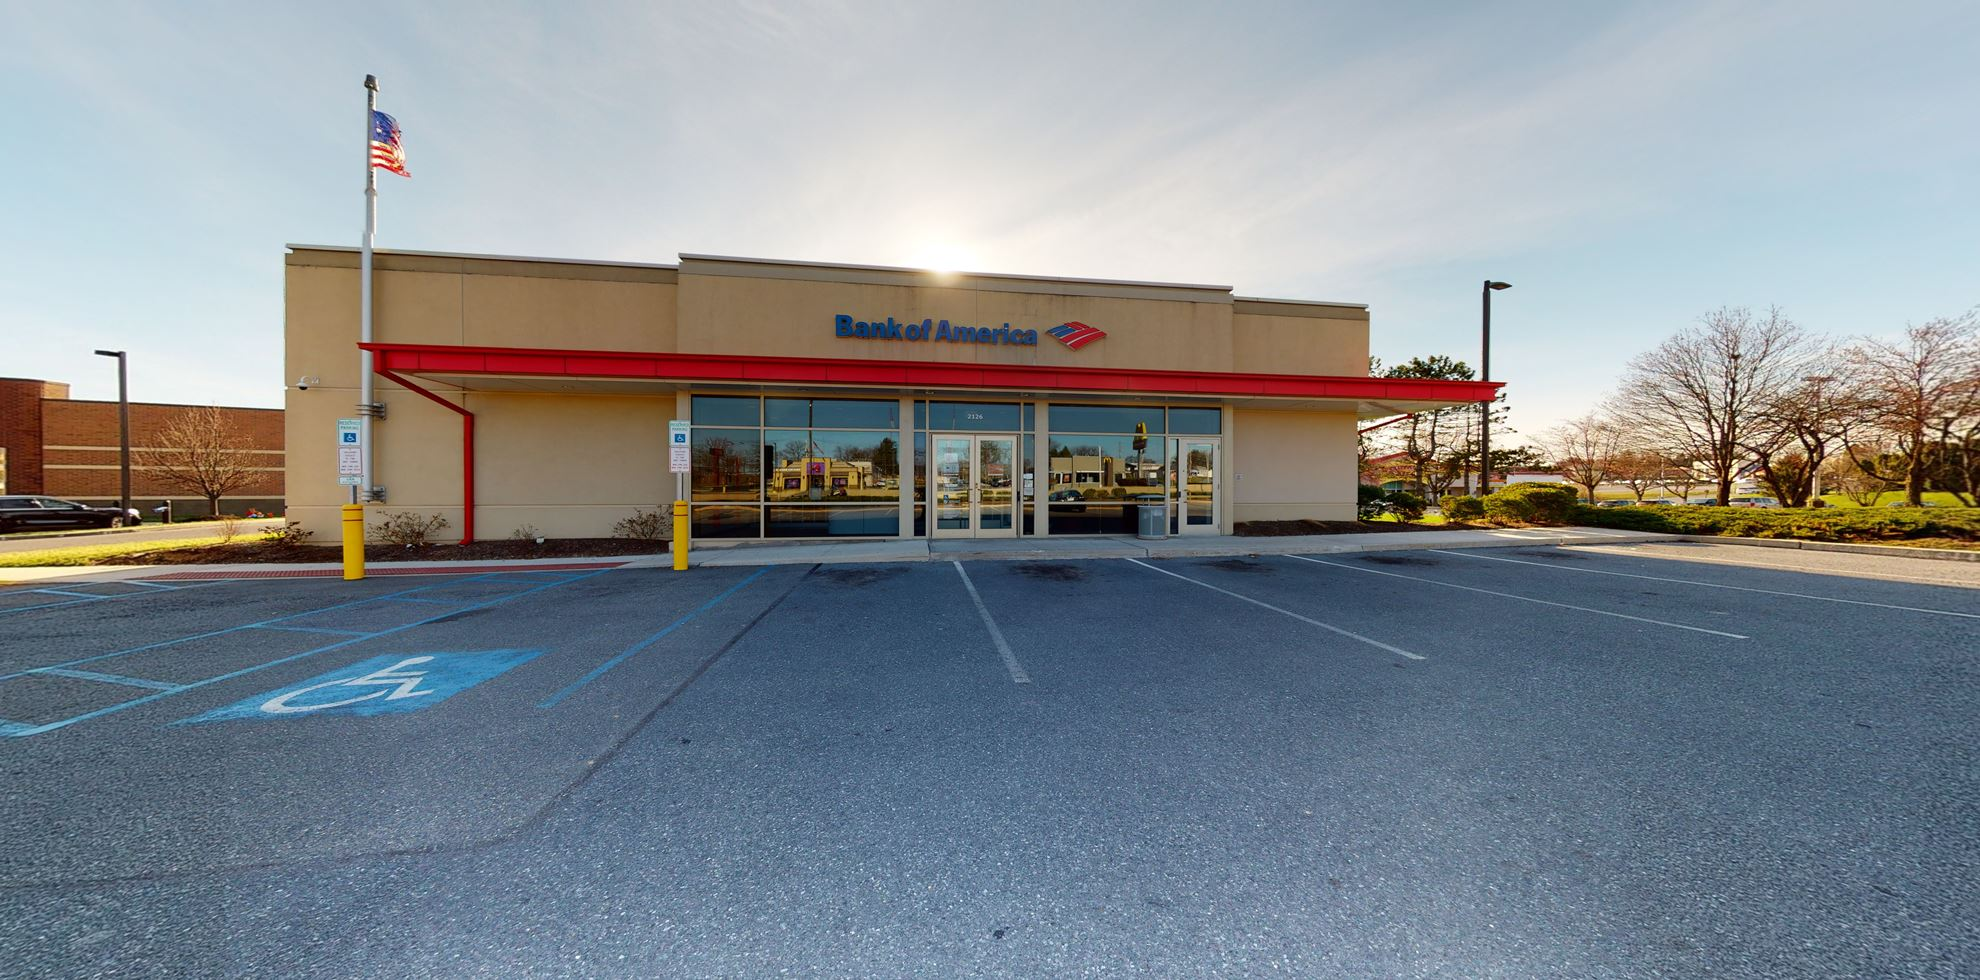 Bank of America financial center with drive-thru ATM   2126 MacArthur Rd, Whitehall, PA 18052